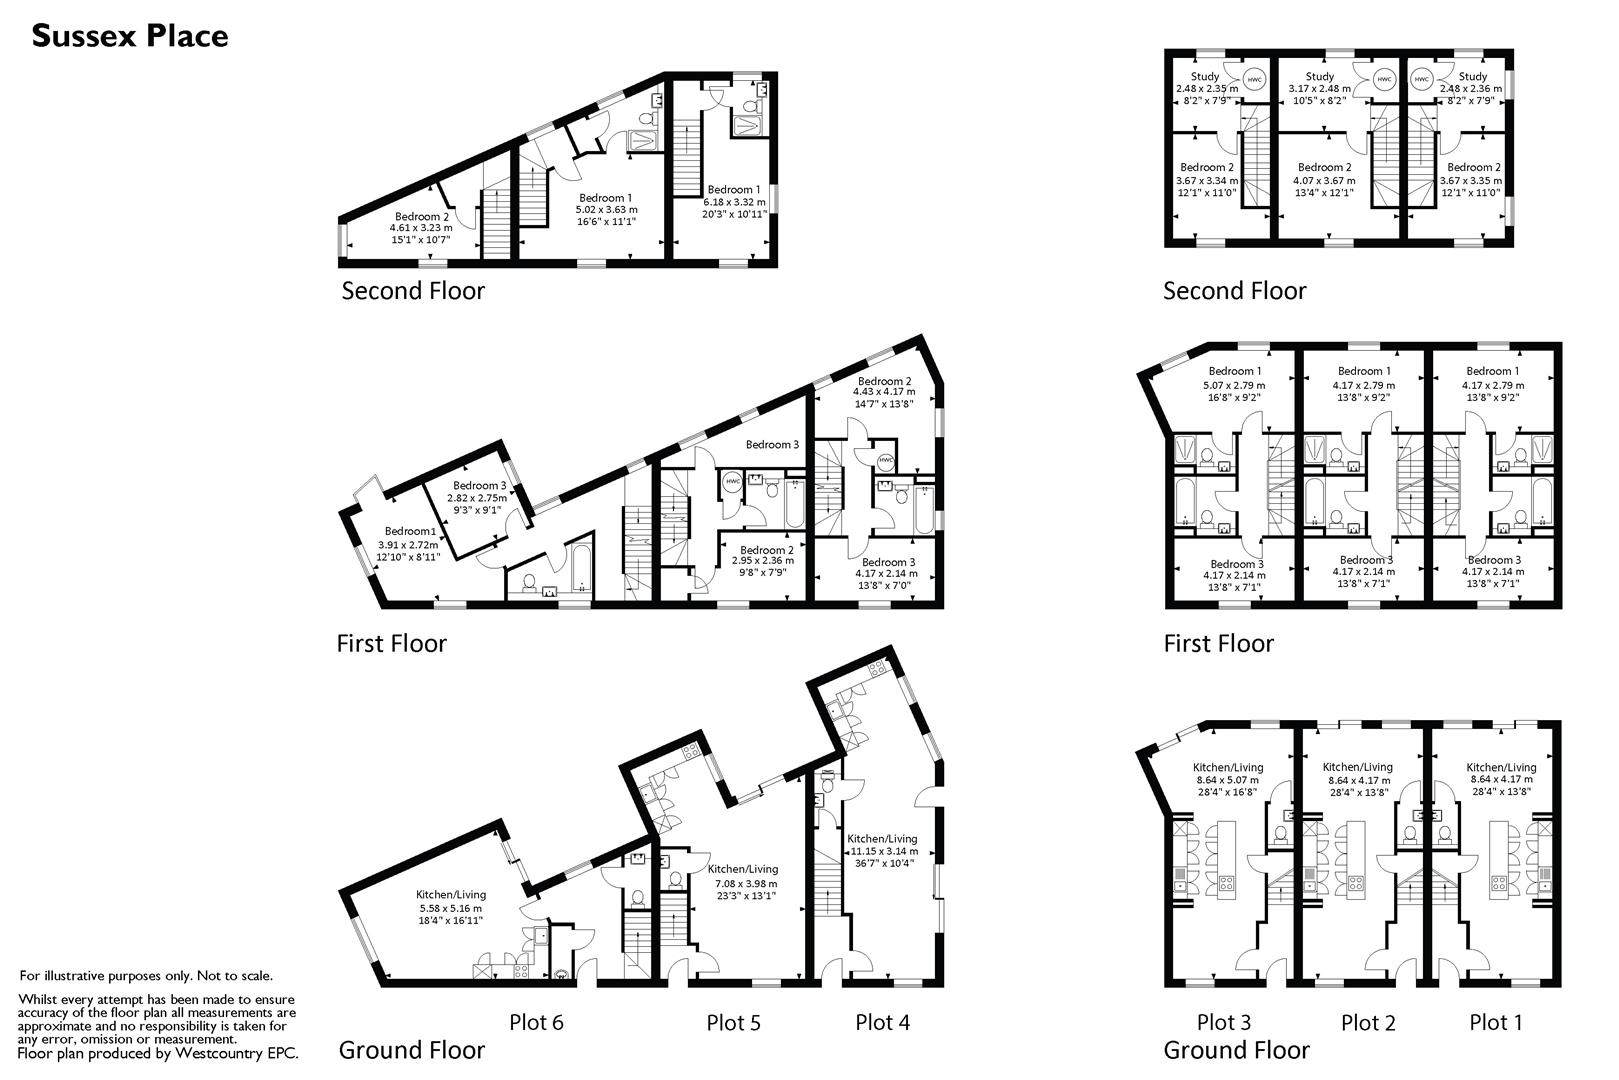 Floorplans For Sussex Mews, St Werburghs